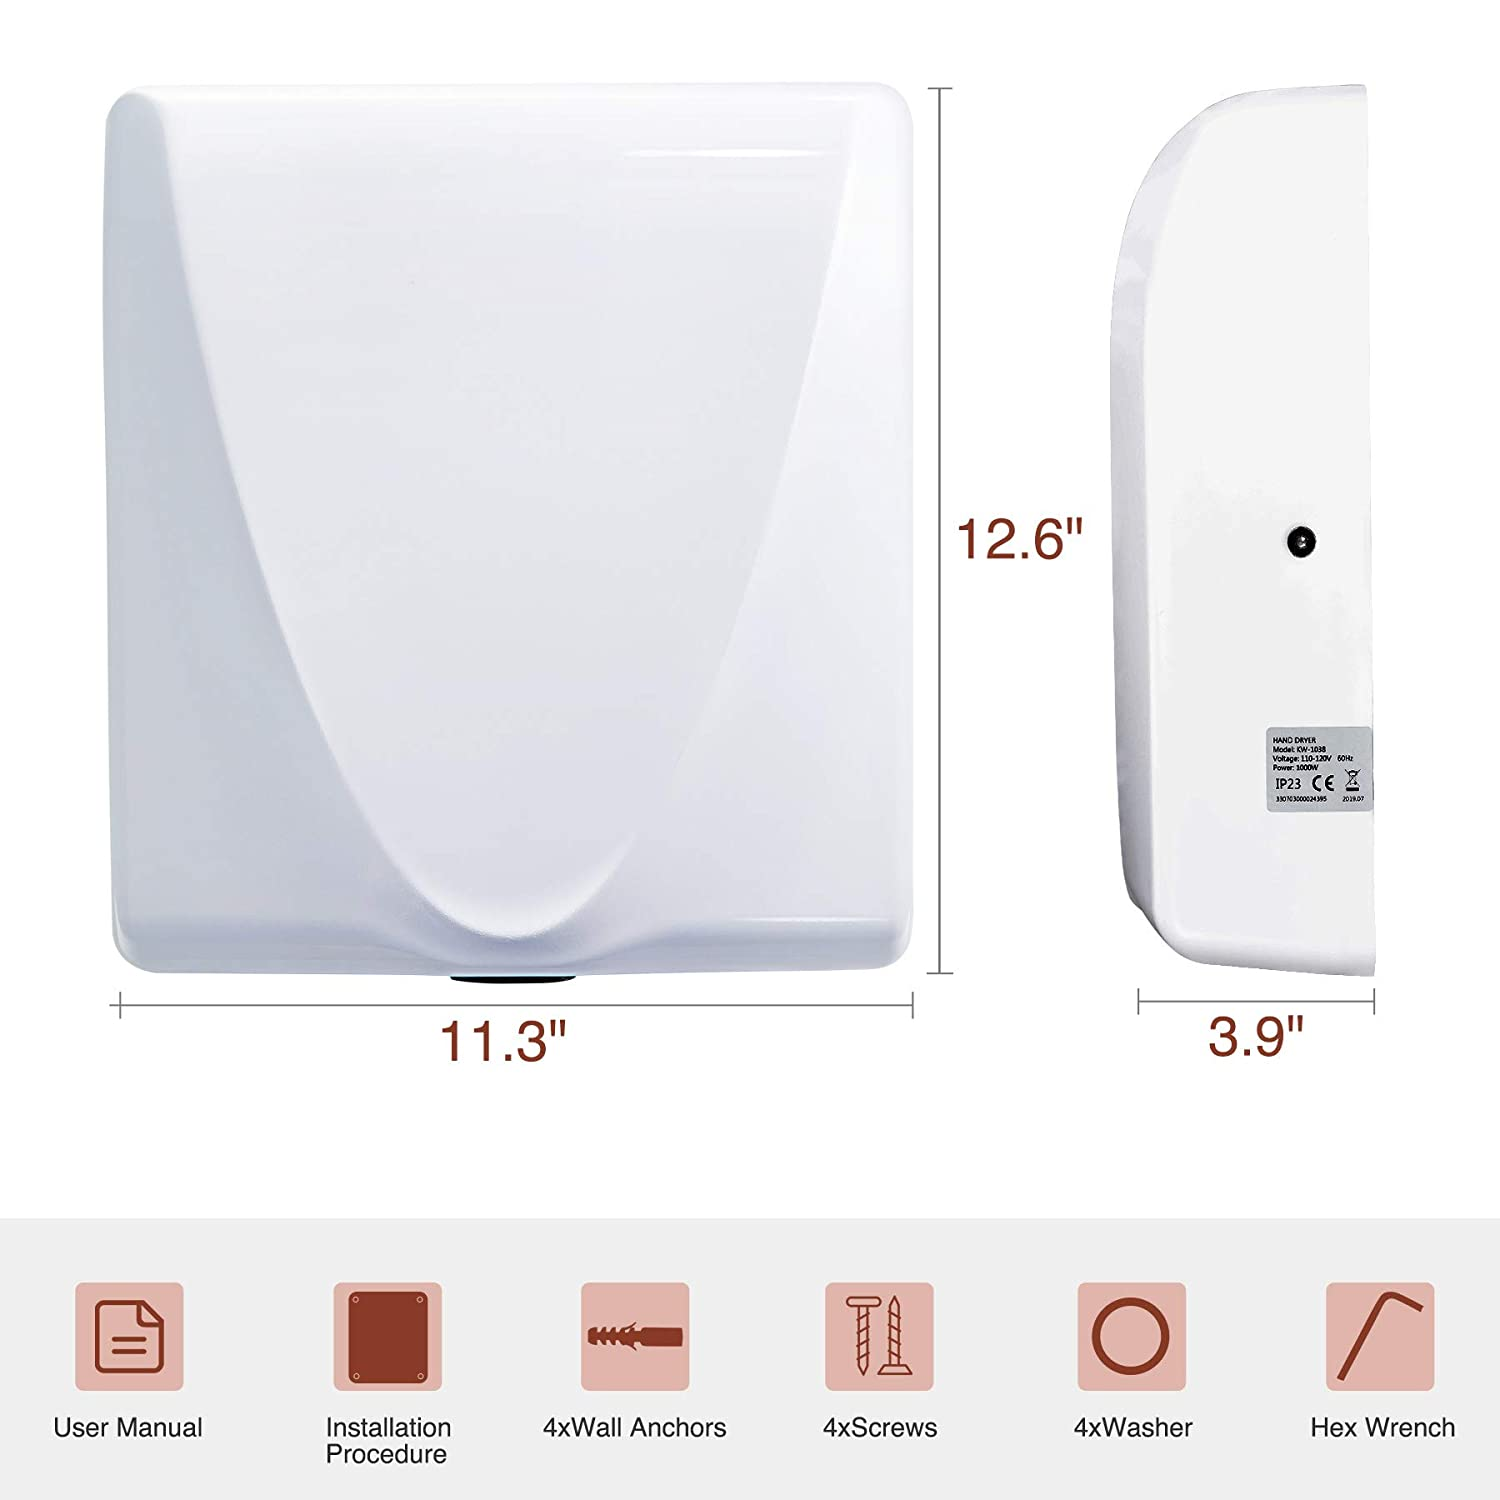 2 pcs VALENS Hand Dryer Commercial for Bathroom 1500W White Household Stainless Steel Hand Dryers 224mph with Overheat Protection System